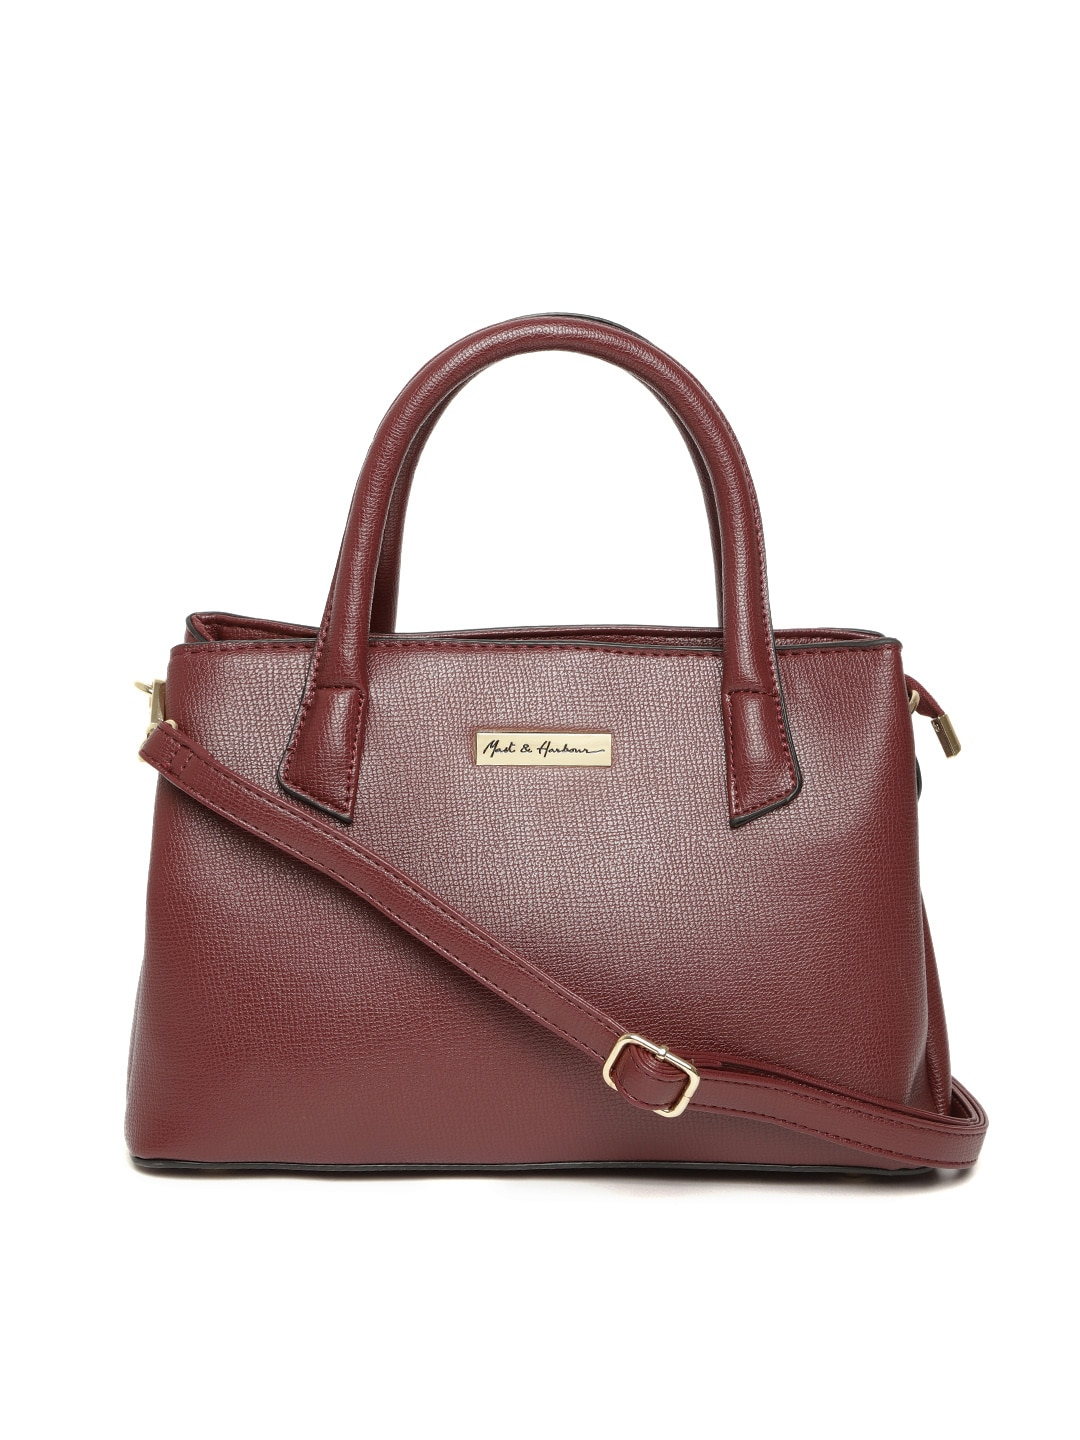 a639e6333c39 Mast And Harbour Handbags - Buy Mast And Harbour Handbags online in India